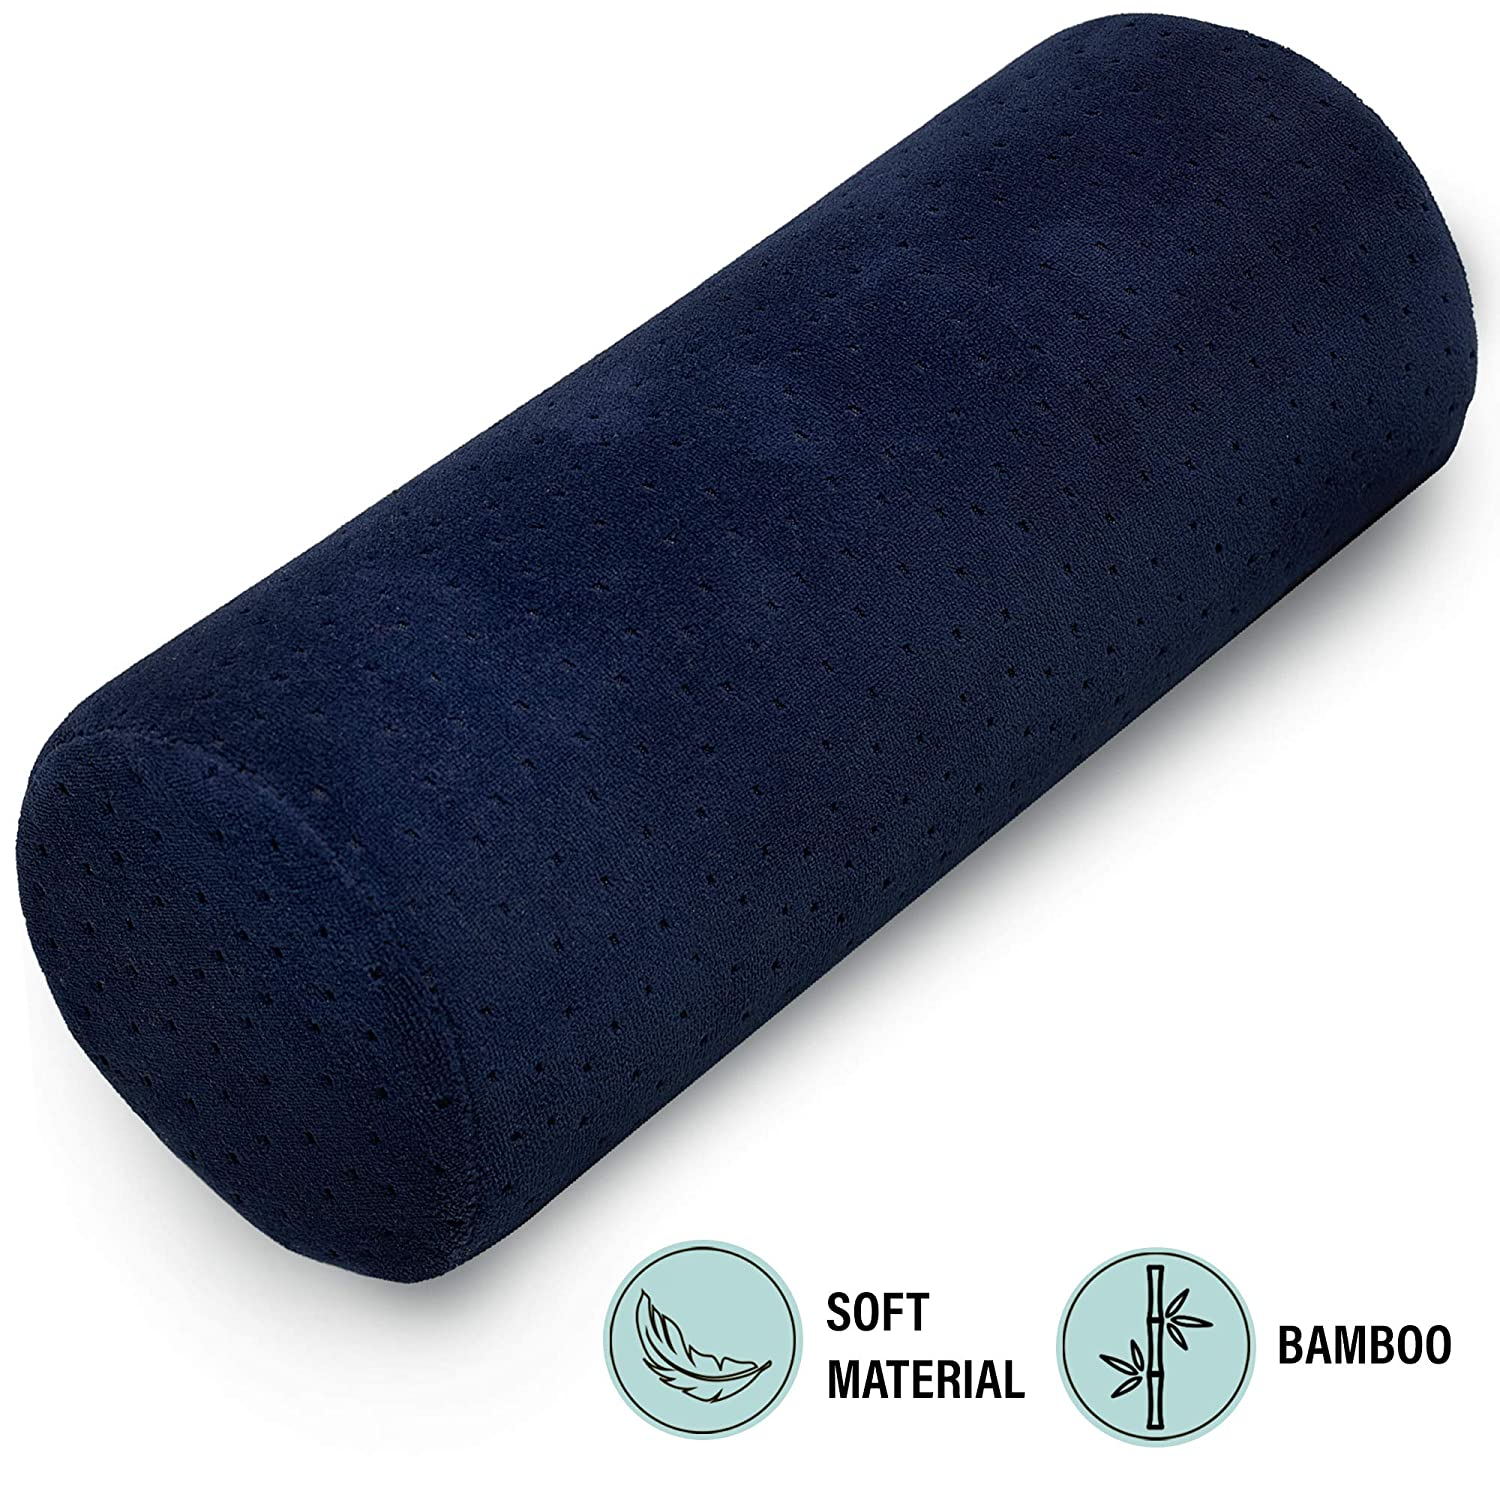 Bamboo Navy Round Cervical Roll Cylinder Bolster Pillow with Removable Washable Cover, Ergonomically Designed for Head, Neck, Back, and Legs || Ideal ...